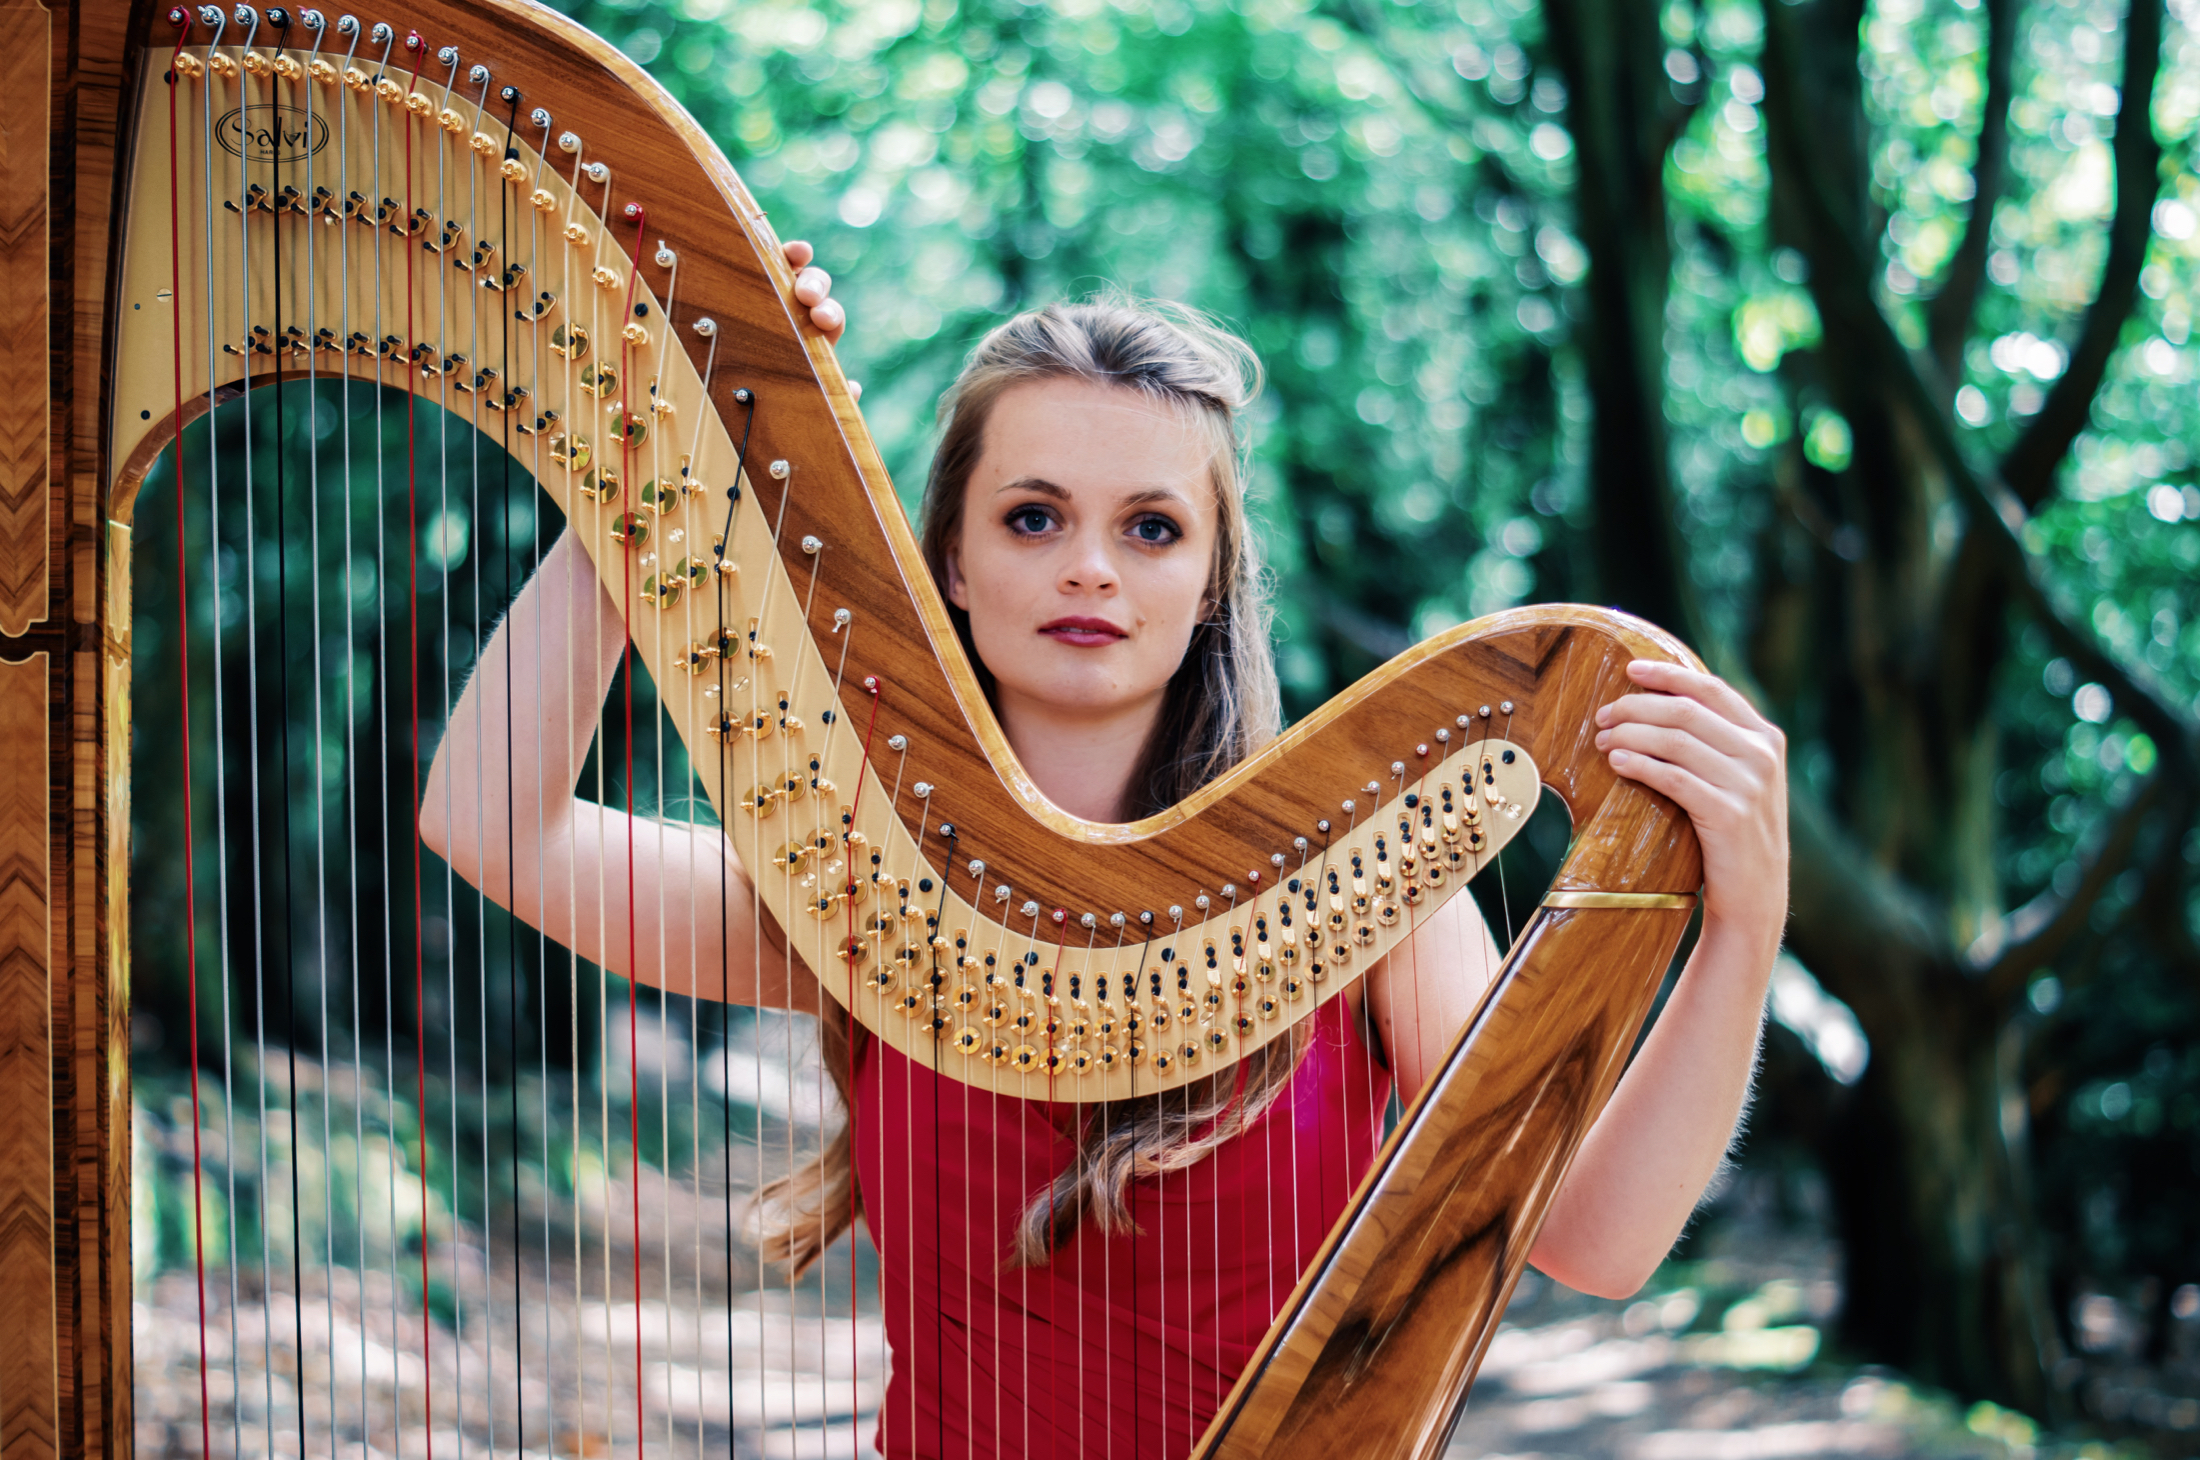 Dreamy, natural photography by Jack Watkins for award-winning classical musician and harpist, Lucy Nolan